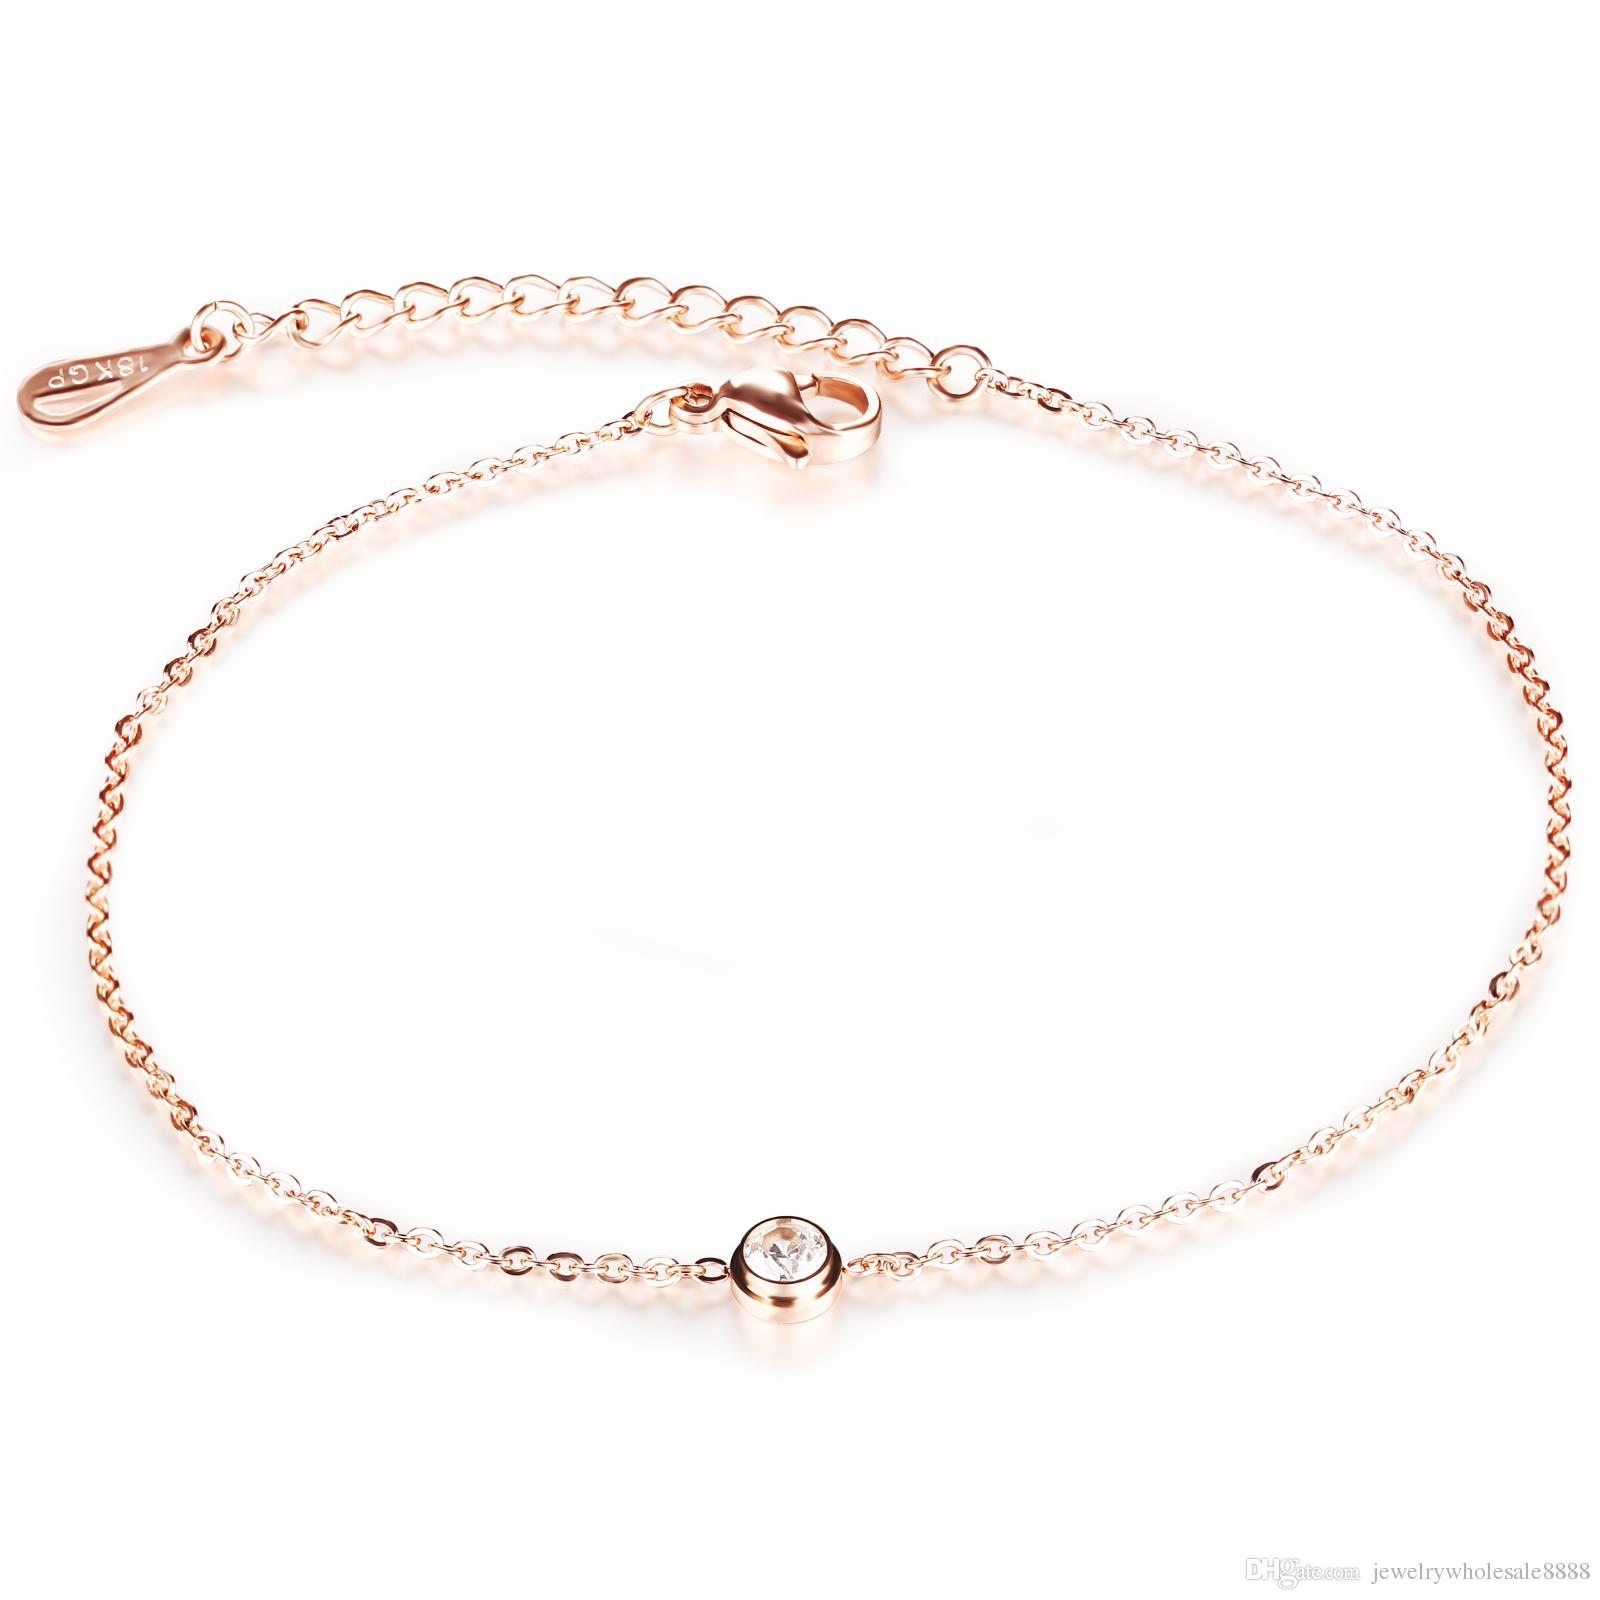 classic this clear hand silver inlays brilliant bracelet is shaped romantic zirconia heart link and polished details products ca sterling expert in chain clr a anklet ankle by with crafted adorned anklets designed cubic